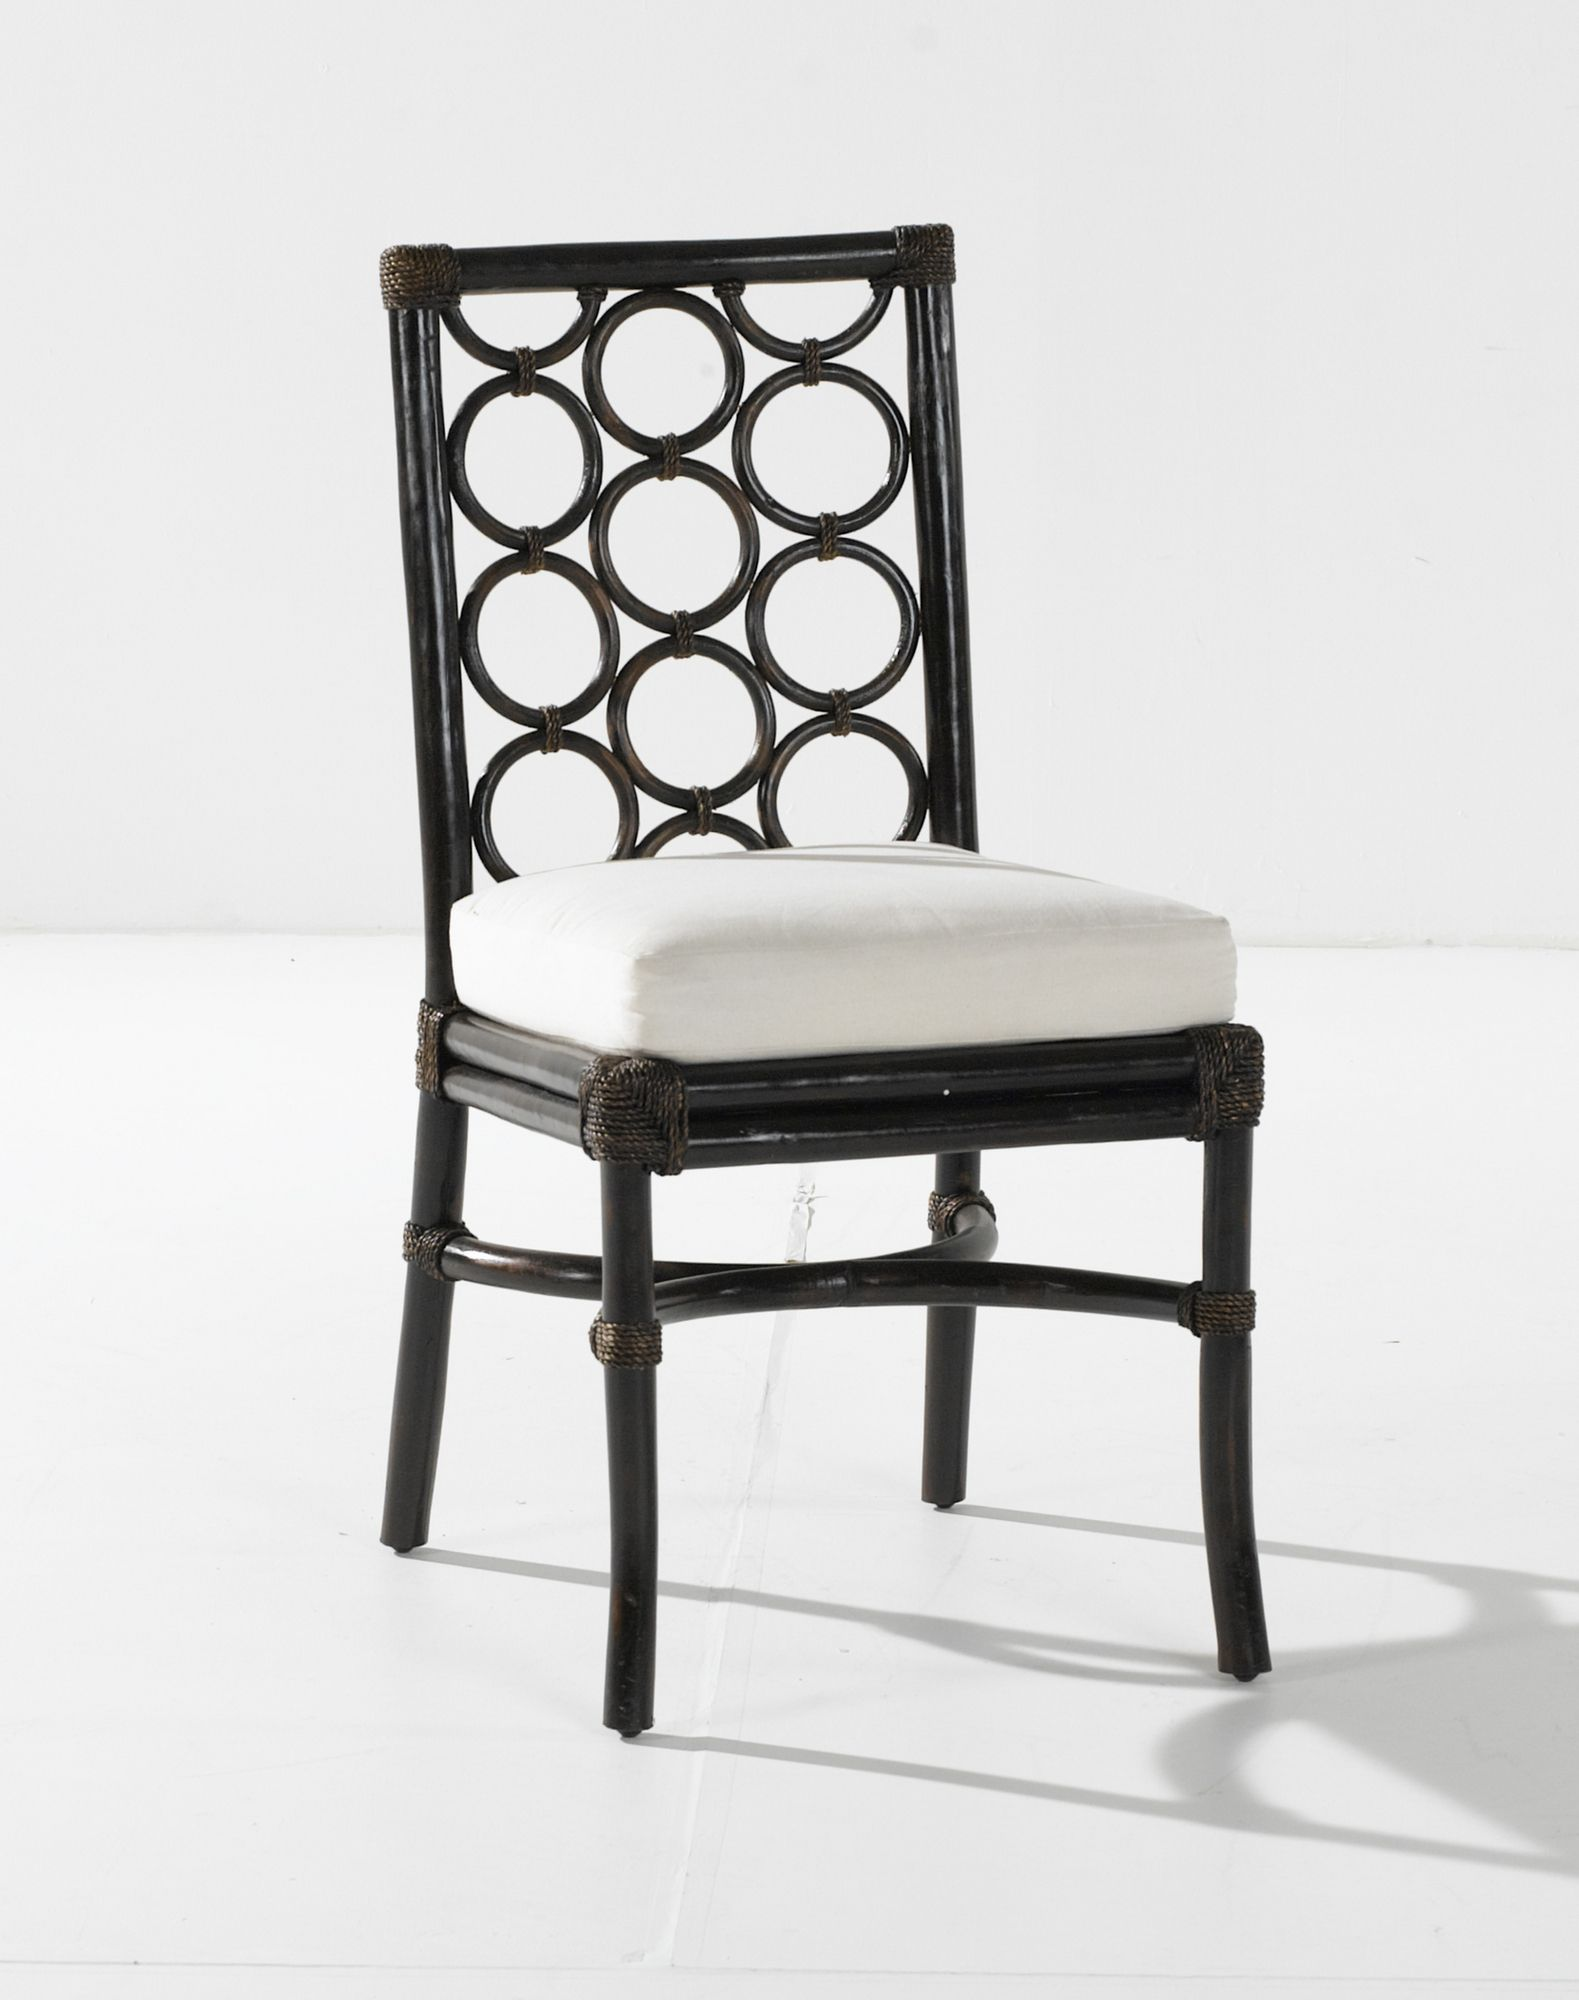 Furniture online tables chairs lights interiors